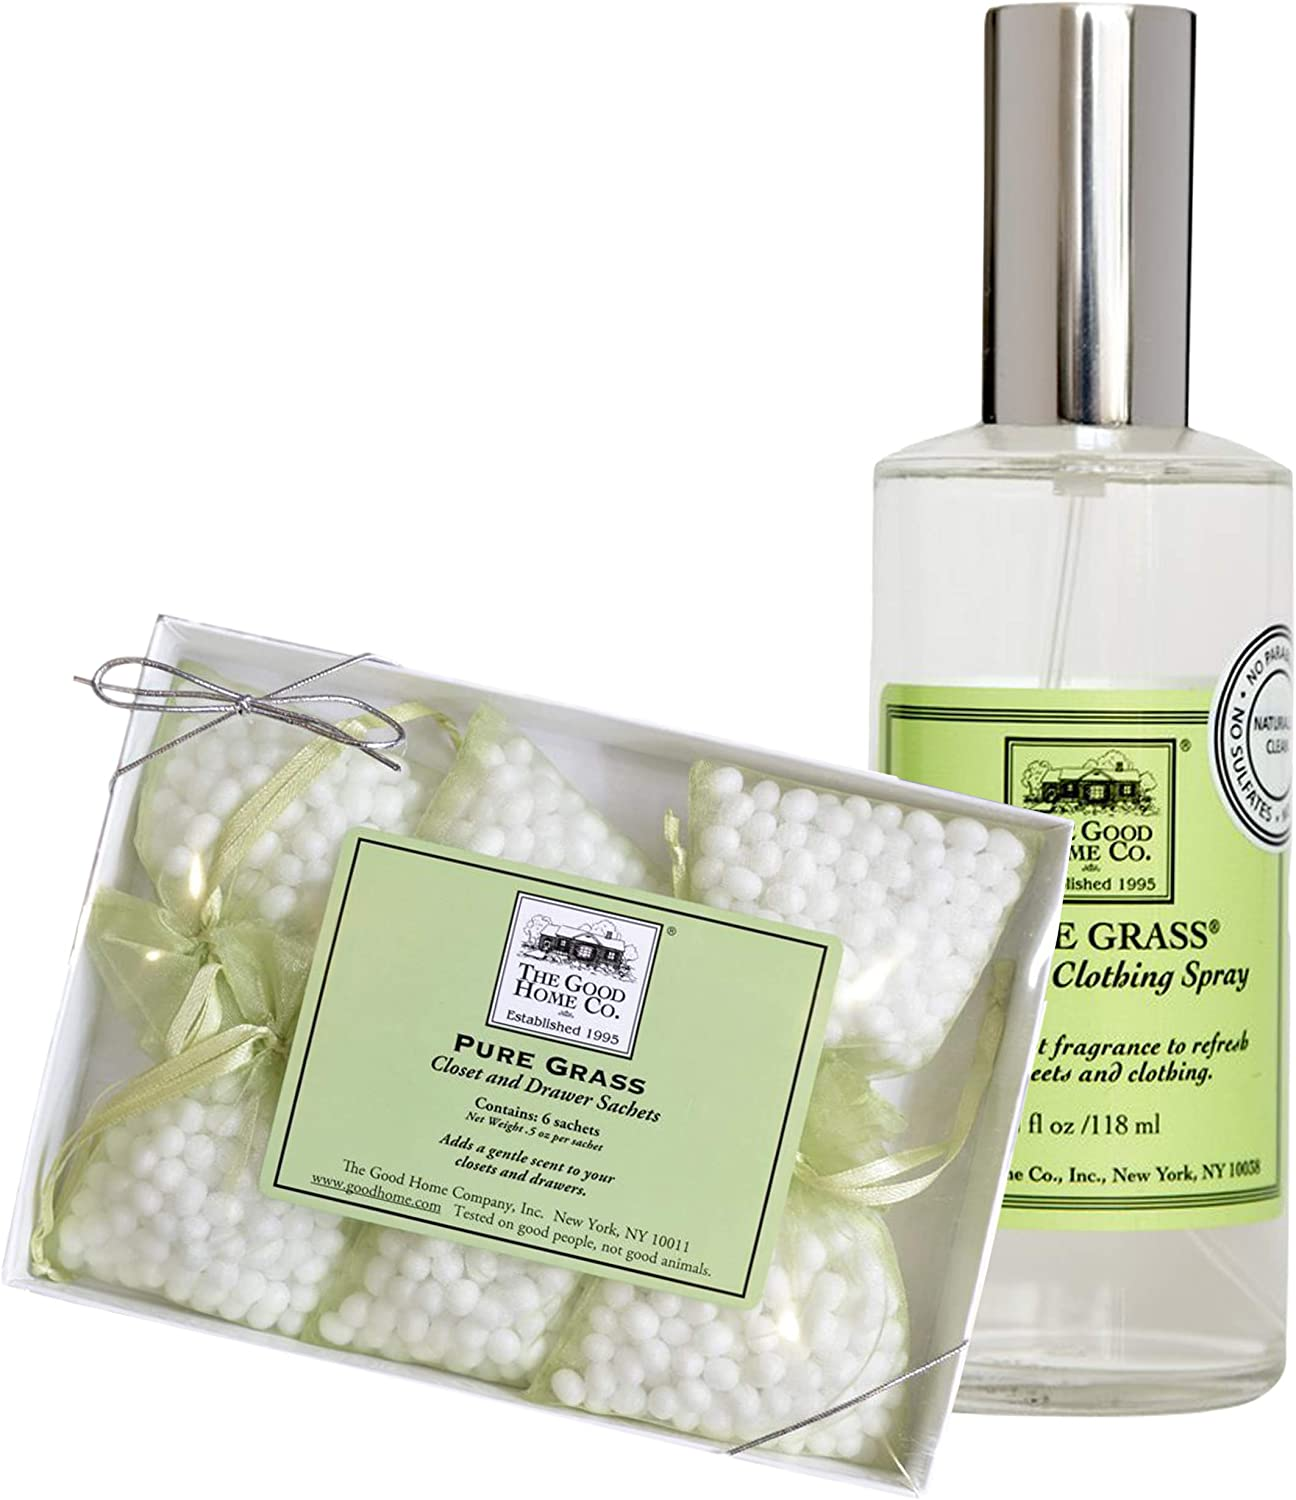 The Good Home Sheet and Clothing Linen Spray 4 oz, Closet & Drawers Scented Sachets 0.5 oz Pure Grass, Improves Sleep, Refreshes Clothes and Linen All-Natural Light Aromatic Scented Freshener